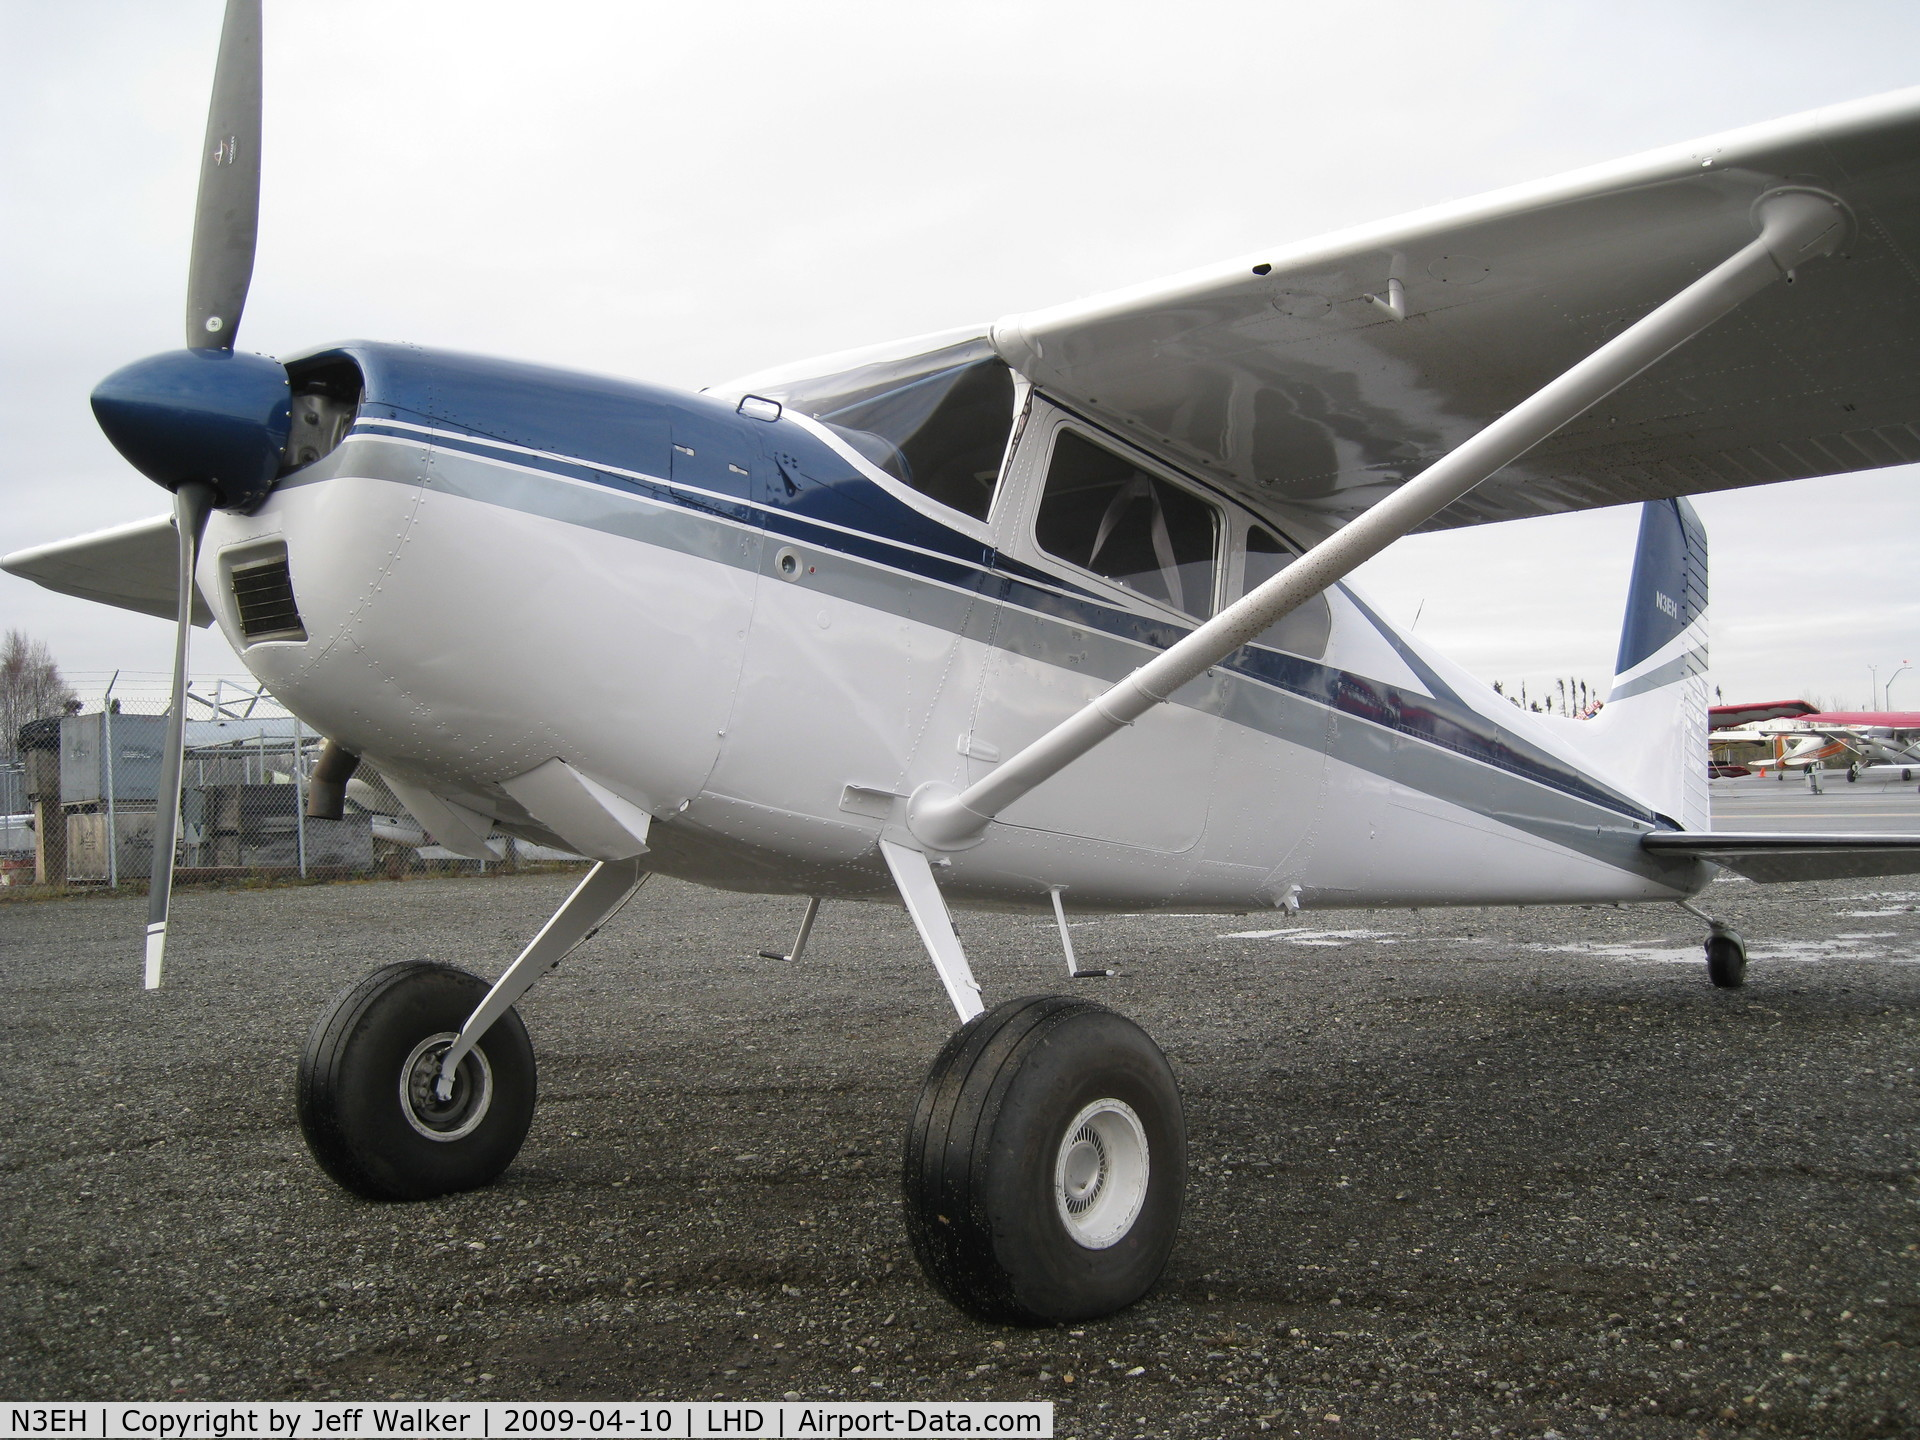 Aircraft N3EH (1961 Cessna 180D C/N 18051020) Photo by Jeff Walker